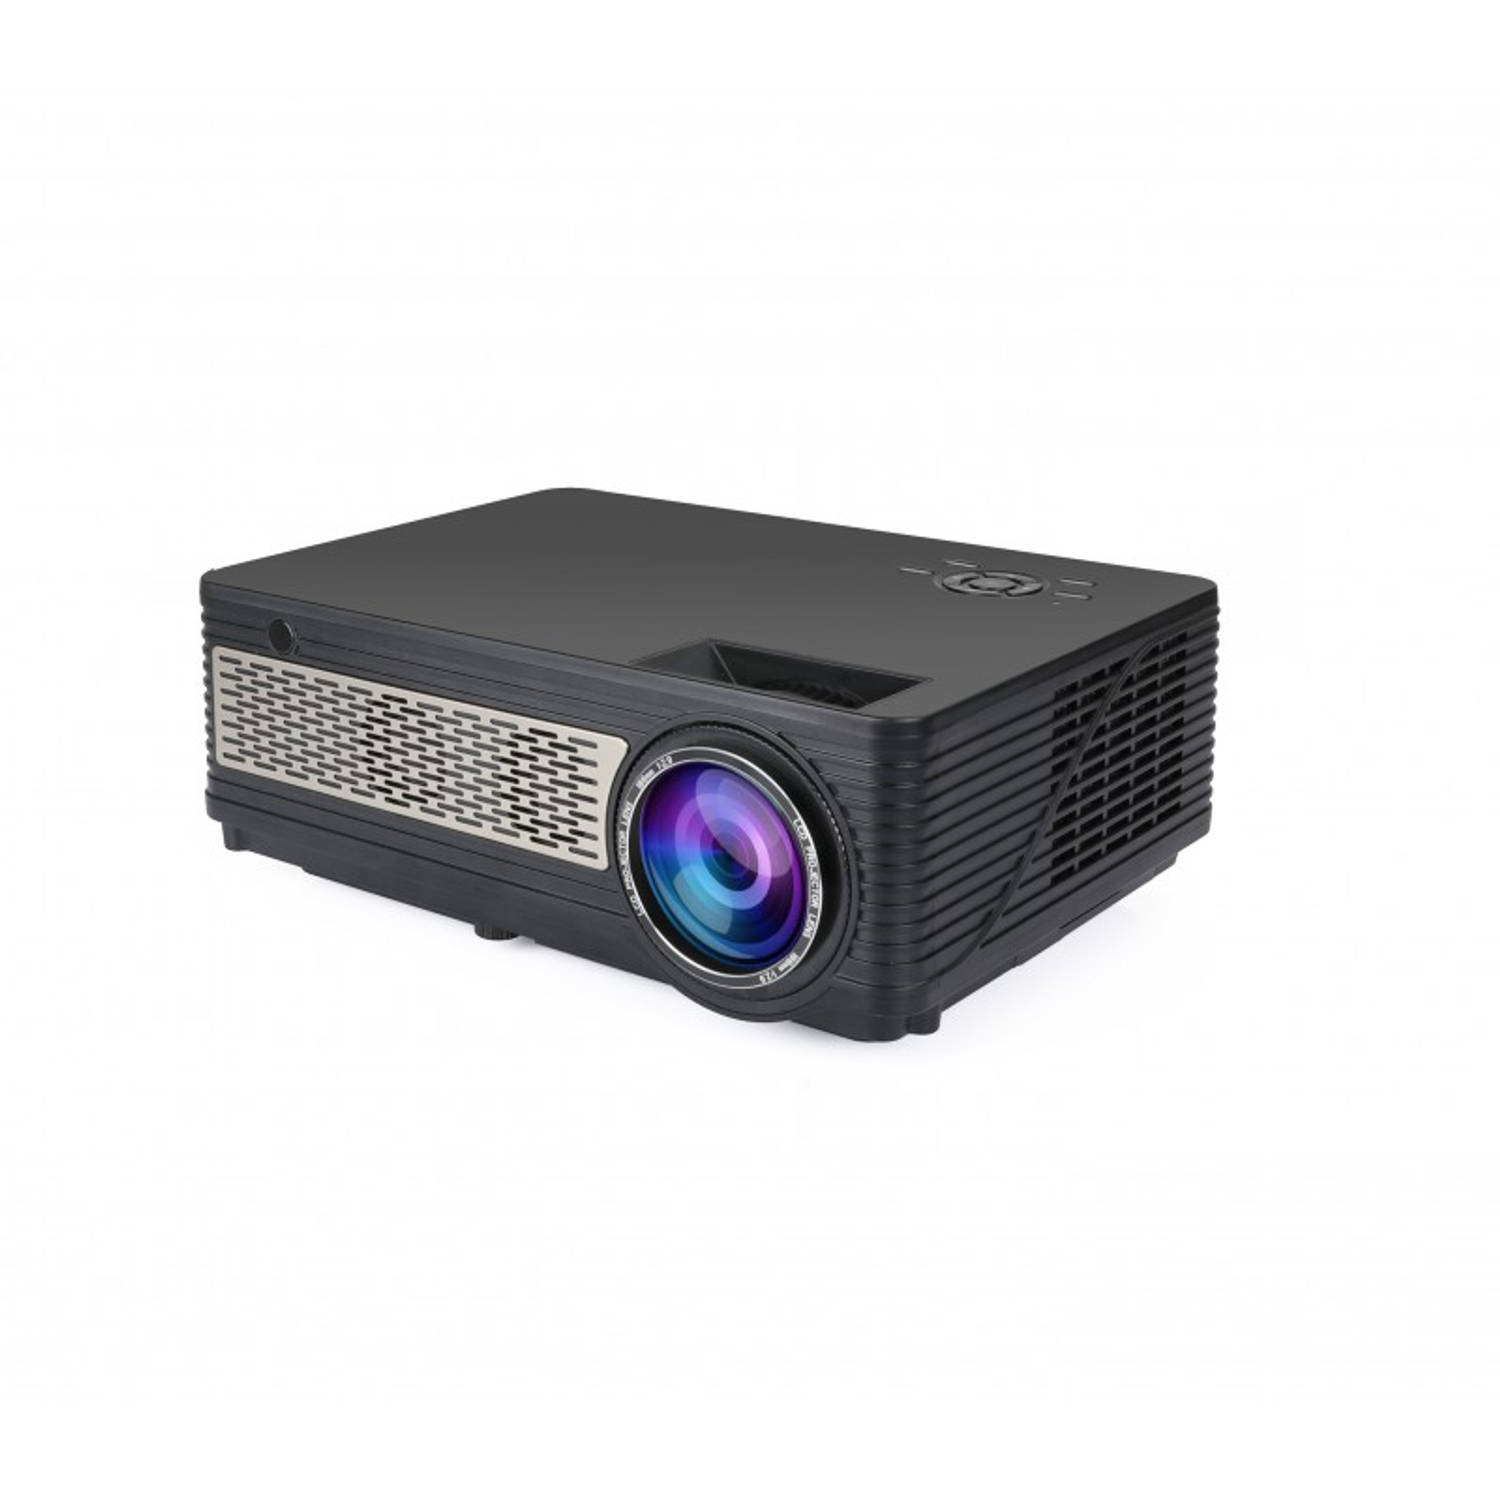 Overmax OVB300 beamer- 1080p Full HD projector 3200 lumen, Wifi, Android 6.0